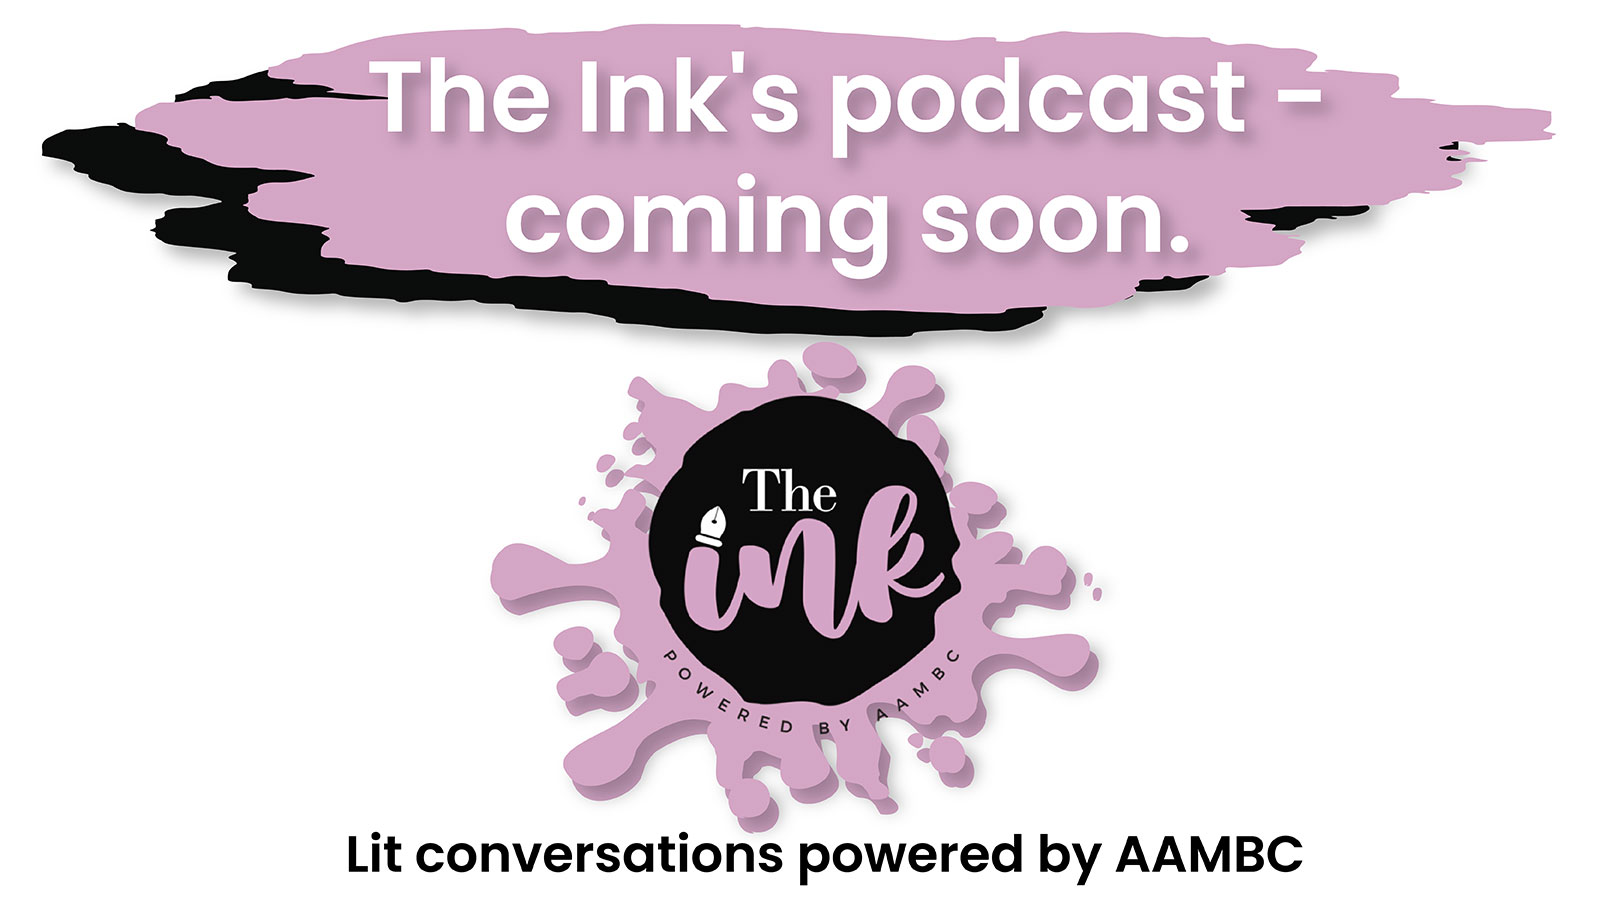 AAMBC Ink Podcast Coming Soon